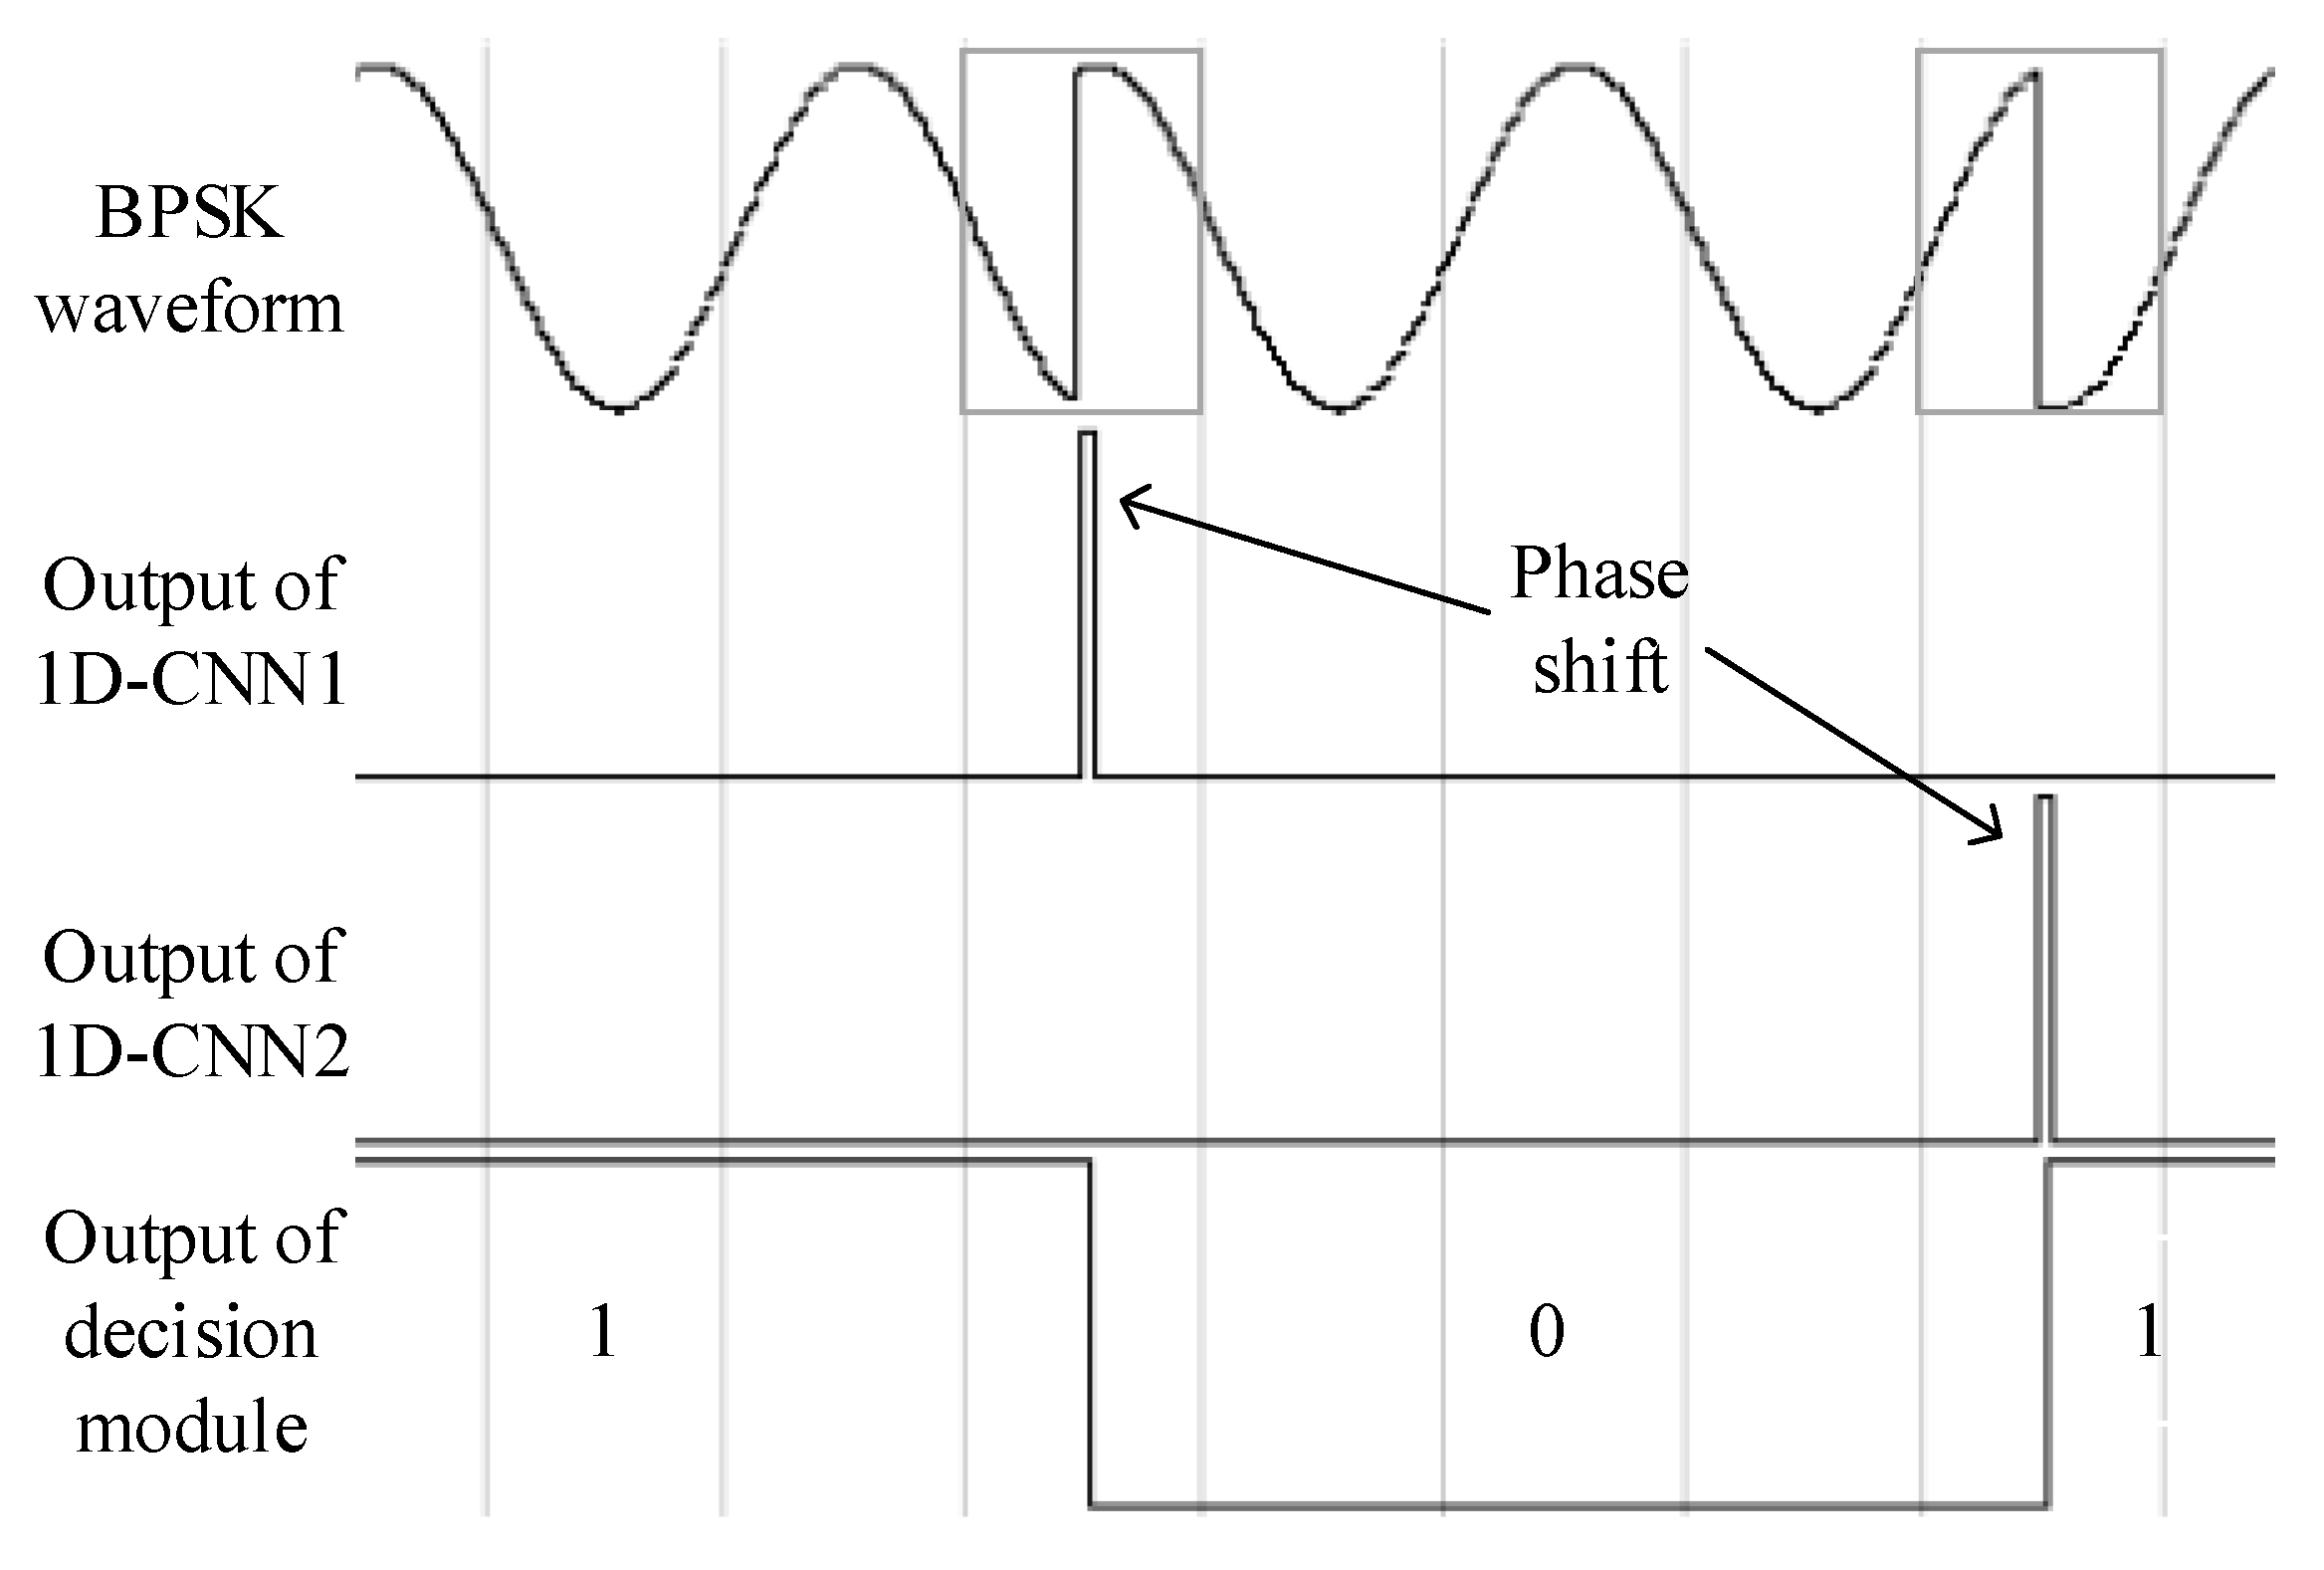 binary phase shift keying bpsk modulation demodulation computer science essay Digital communication and computer science binary phase- shift keying (bpsk) modulation scheme the results are applicable to systems employing a coherent.